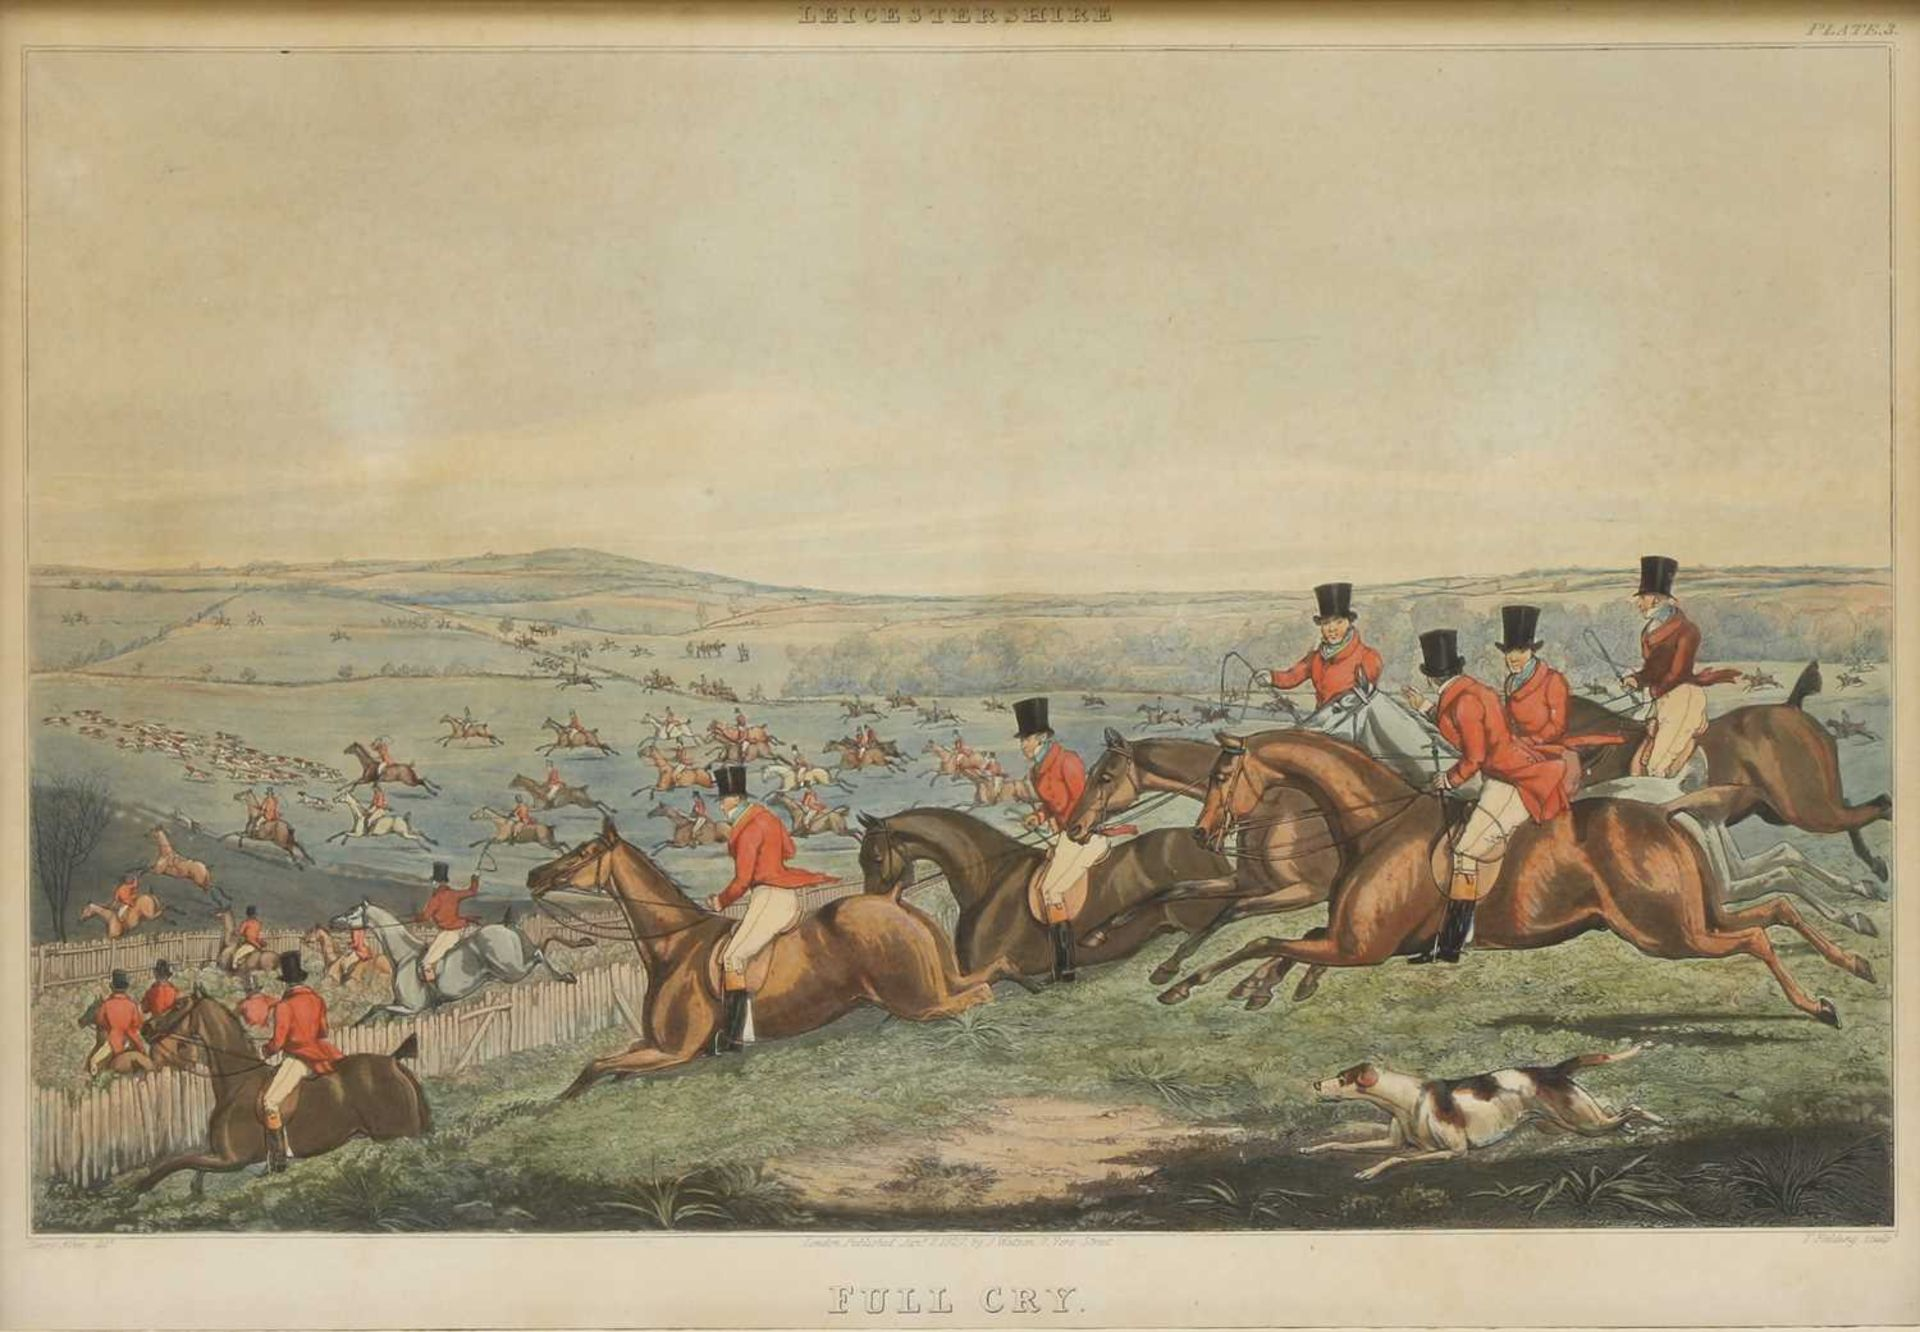 Thomas Fielding (1758-1820), after Henry Thomas Alken (1785-1851) - Image 3 of 14